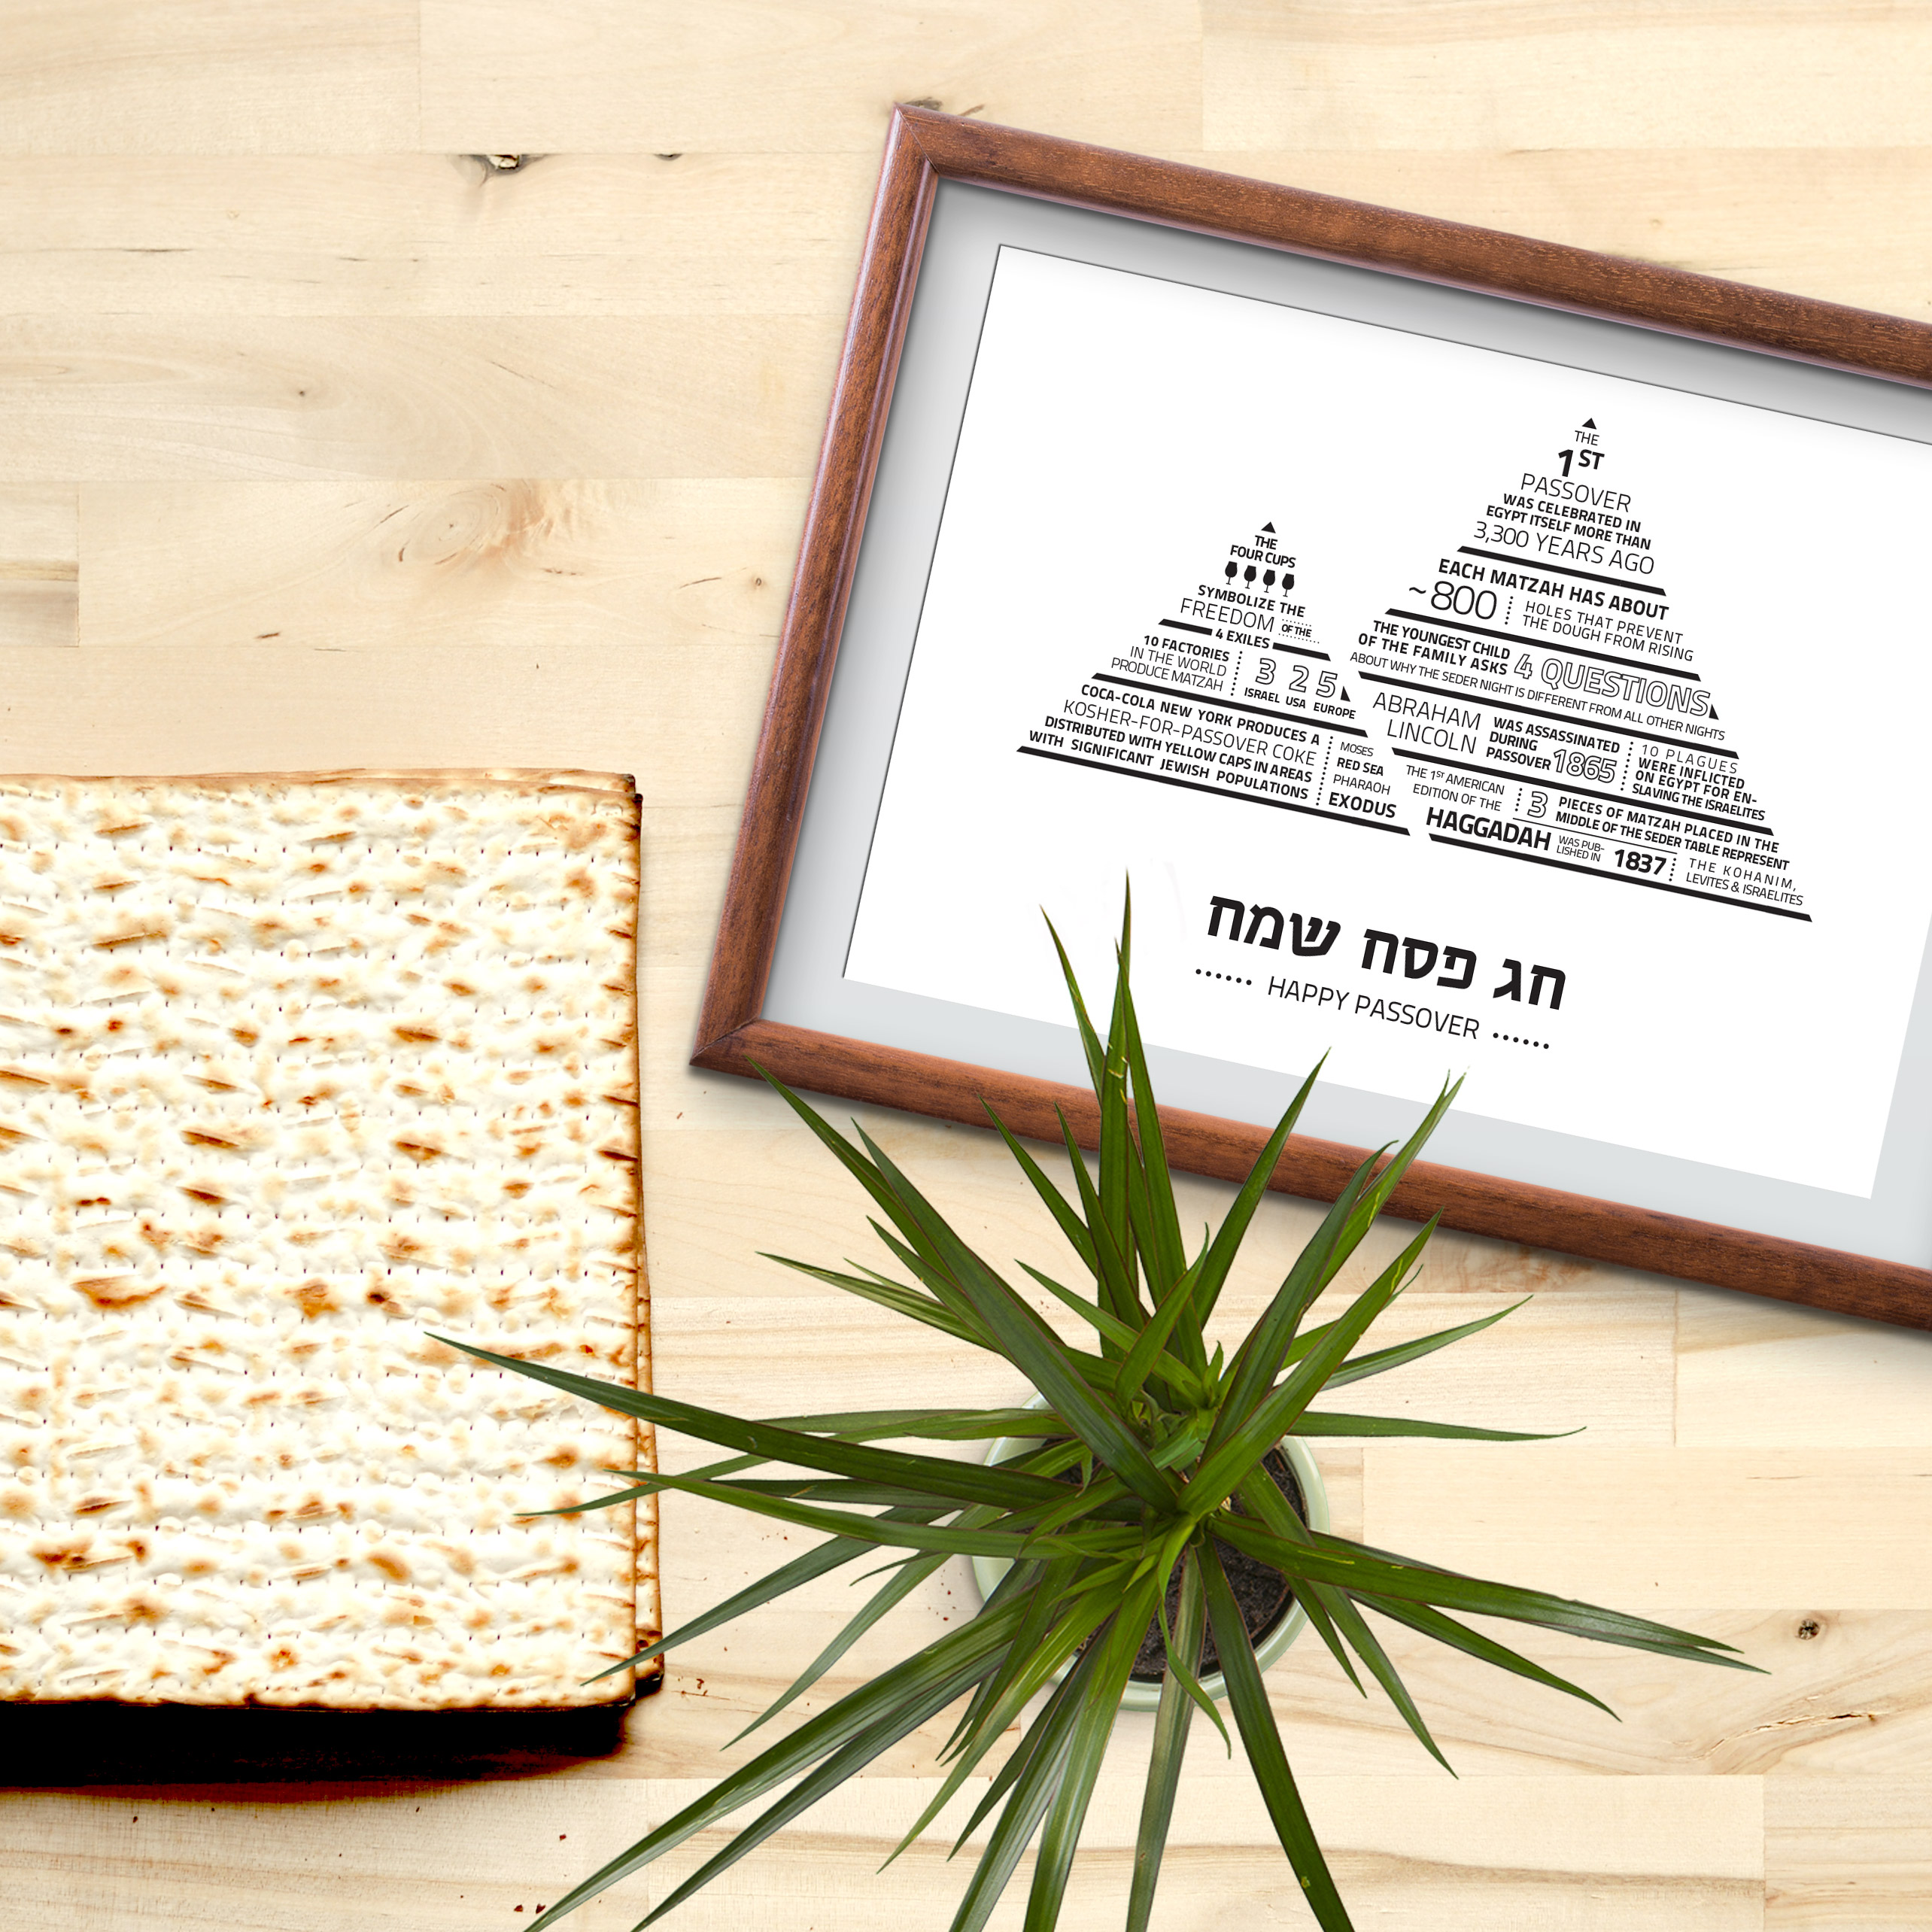 Happy Passover, Jewish holiday, Passover cards